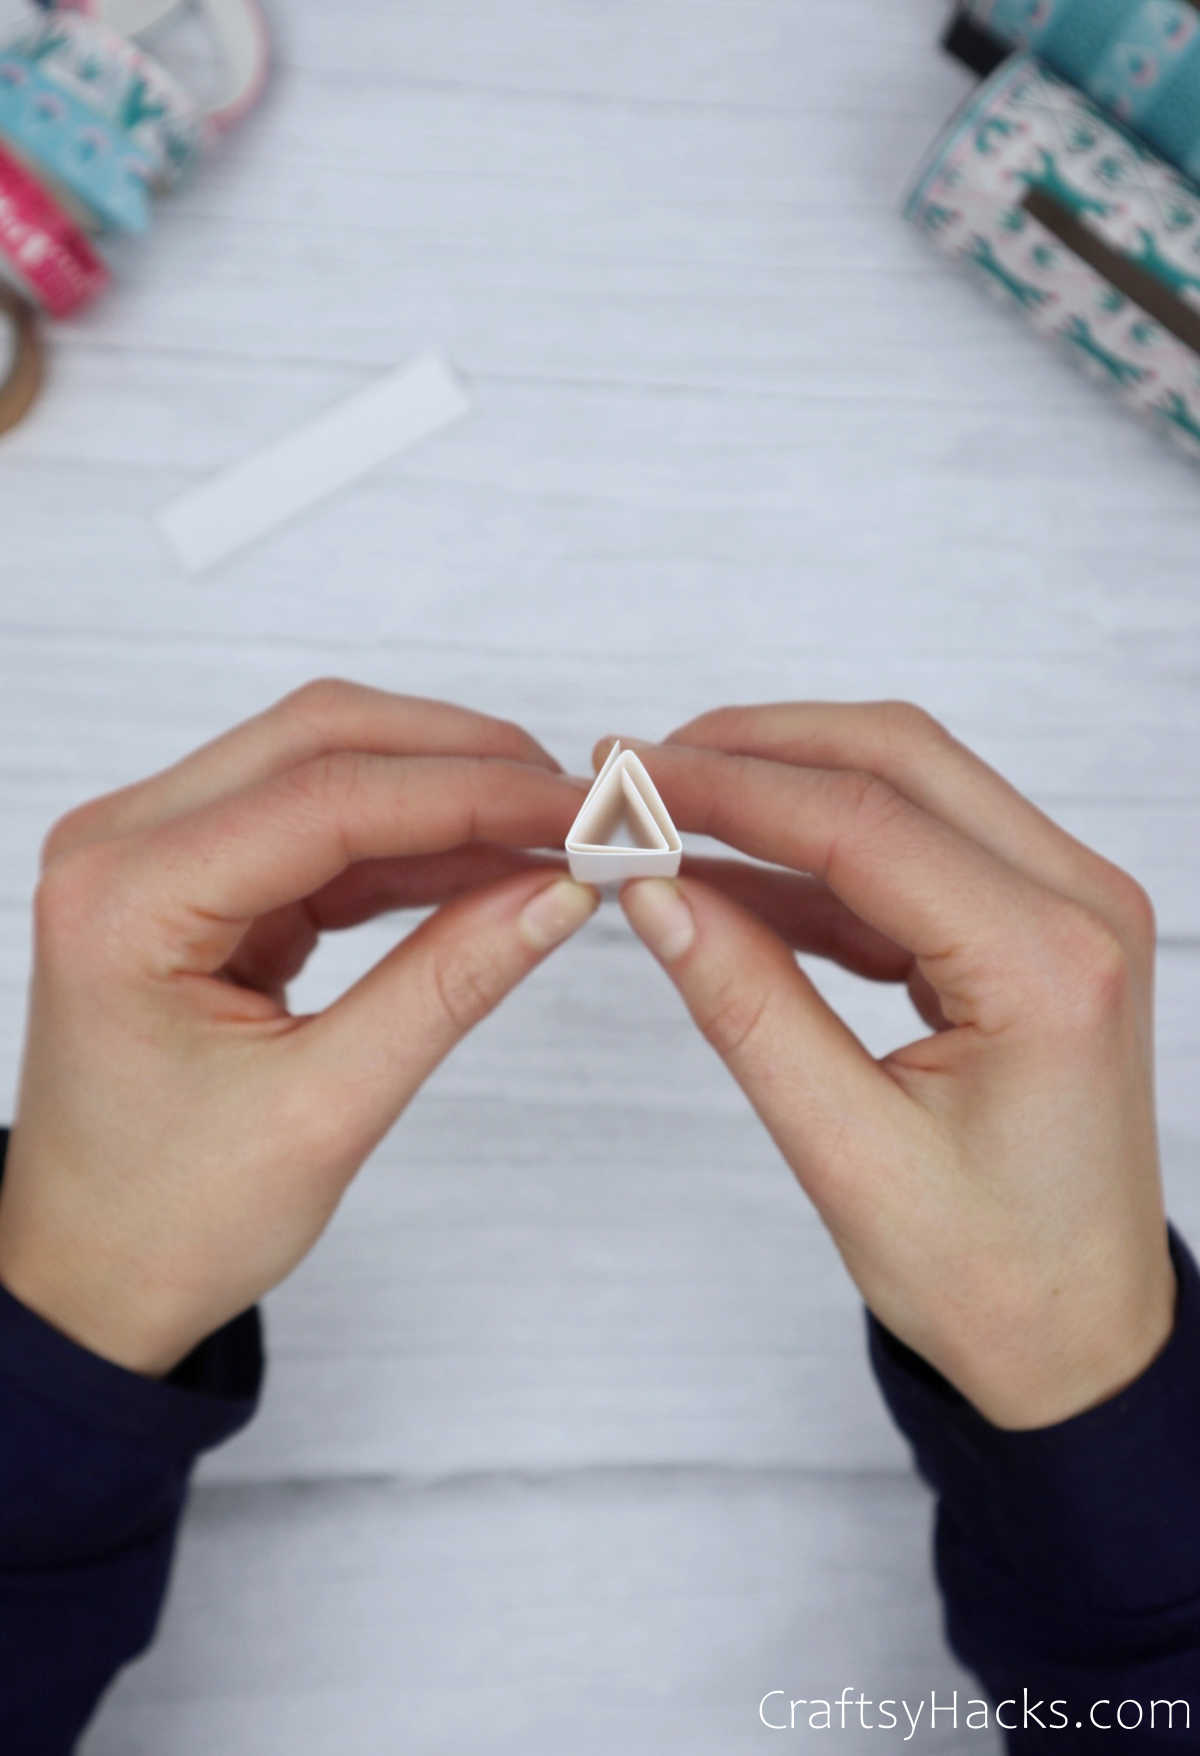 completed paper triangle